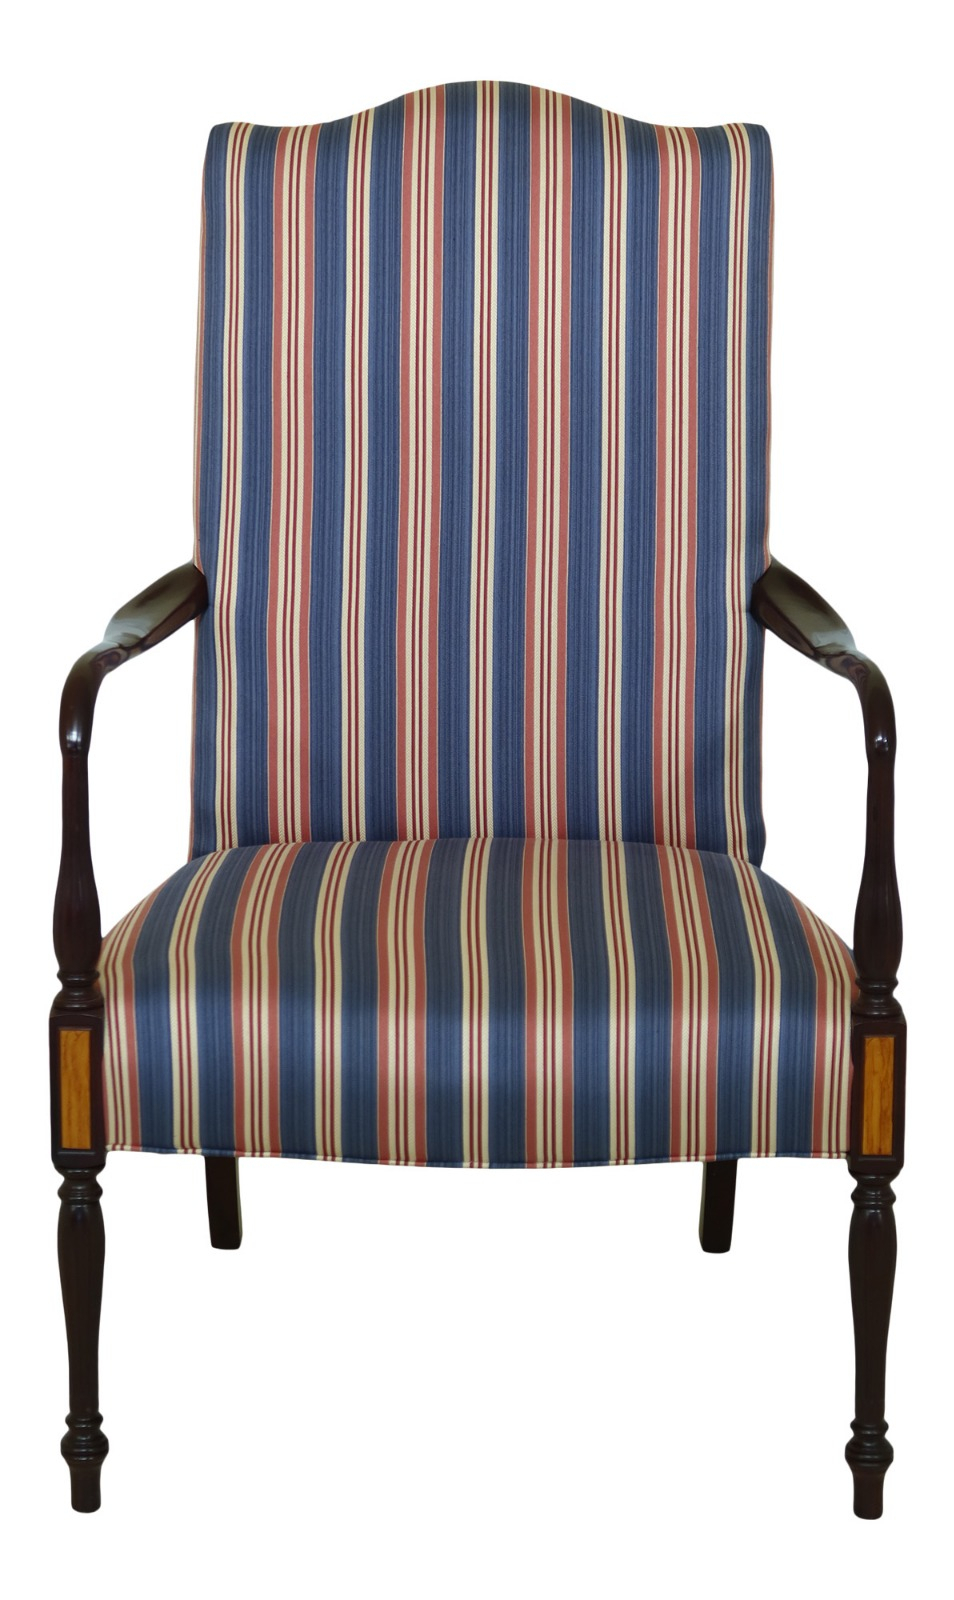 32166Ec: Sheraton Mahogany Striped Upholstered Lolling For Striped Sofas And Chairs (View 2 of 15)